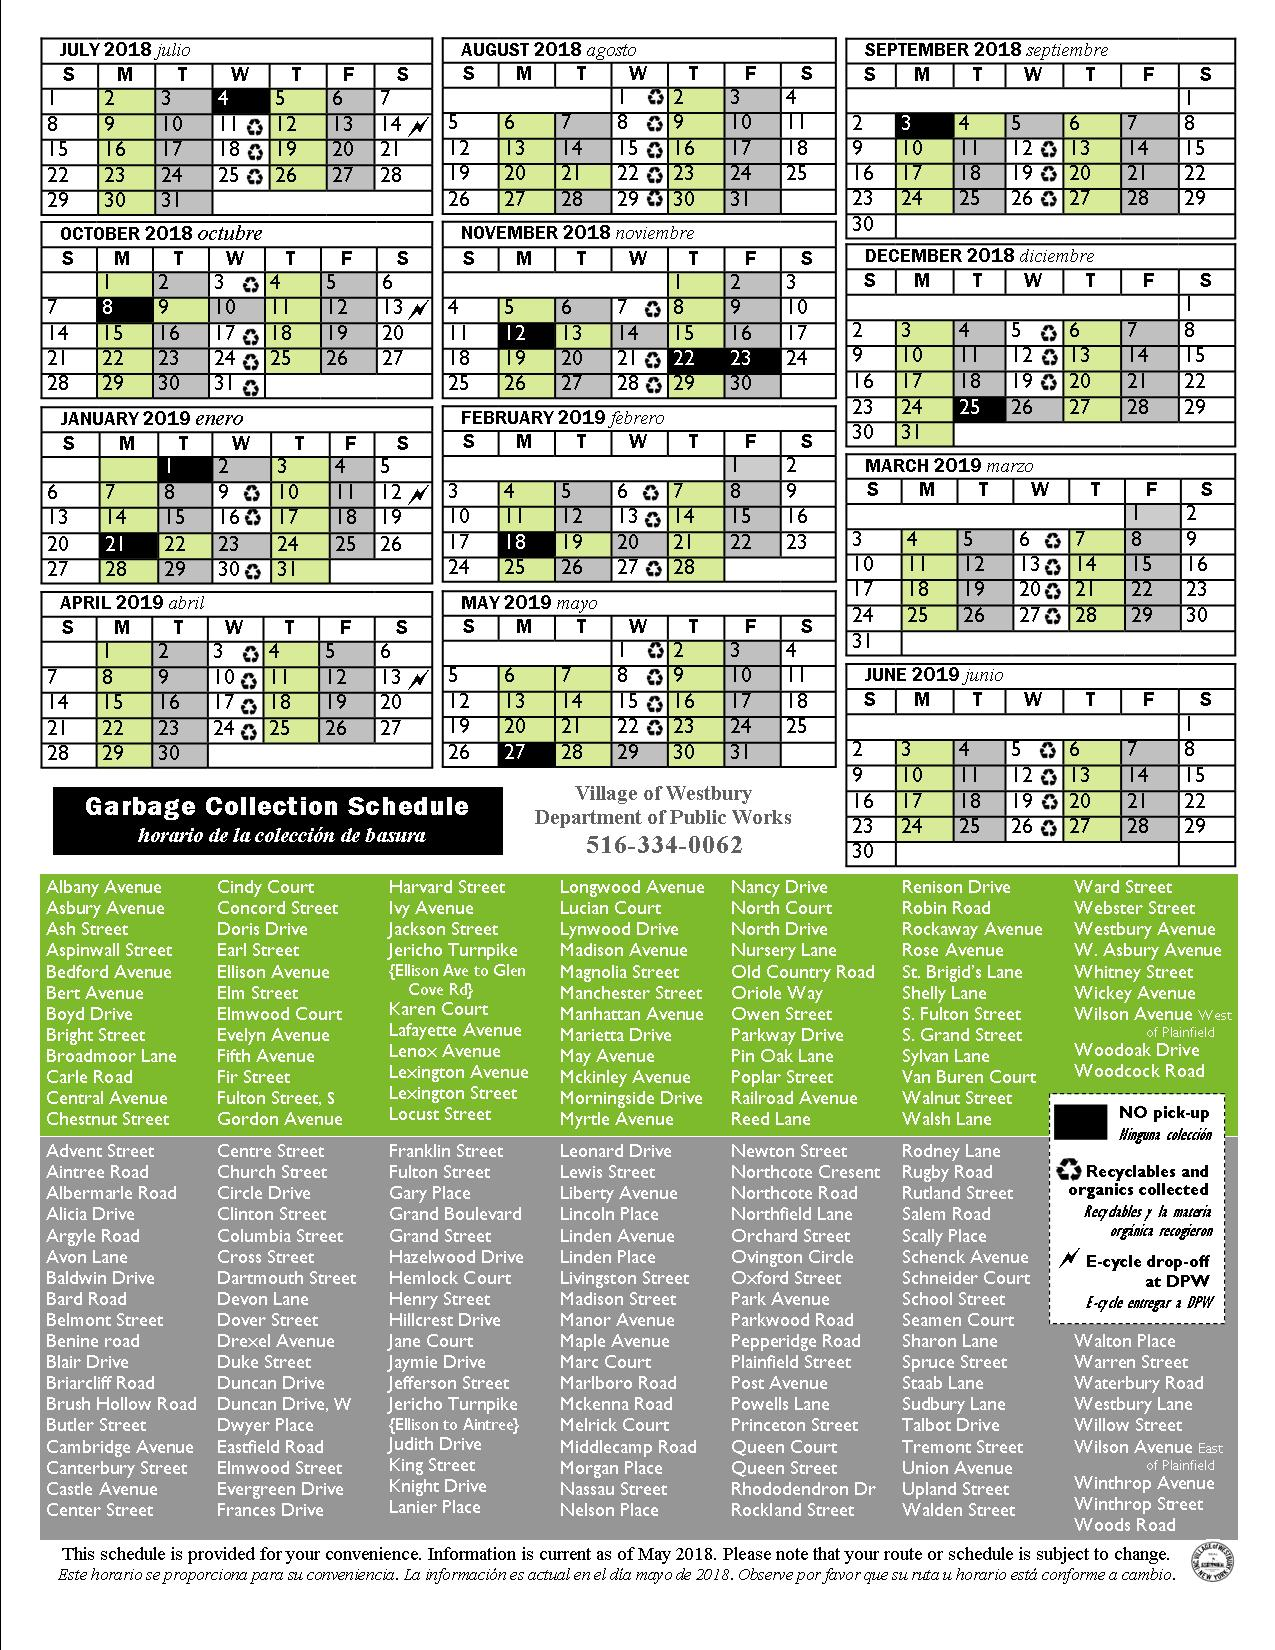 Nyc Sanitation Holiday Schedule 2020 Sanitation and Rubbish Pick up Schedules   Village of Westbury, NY